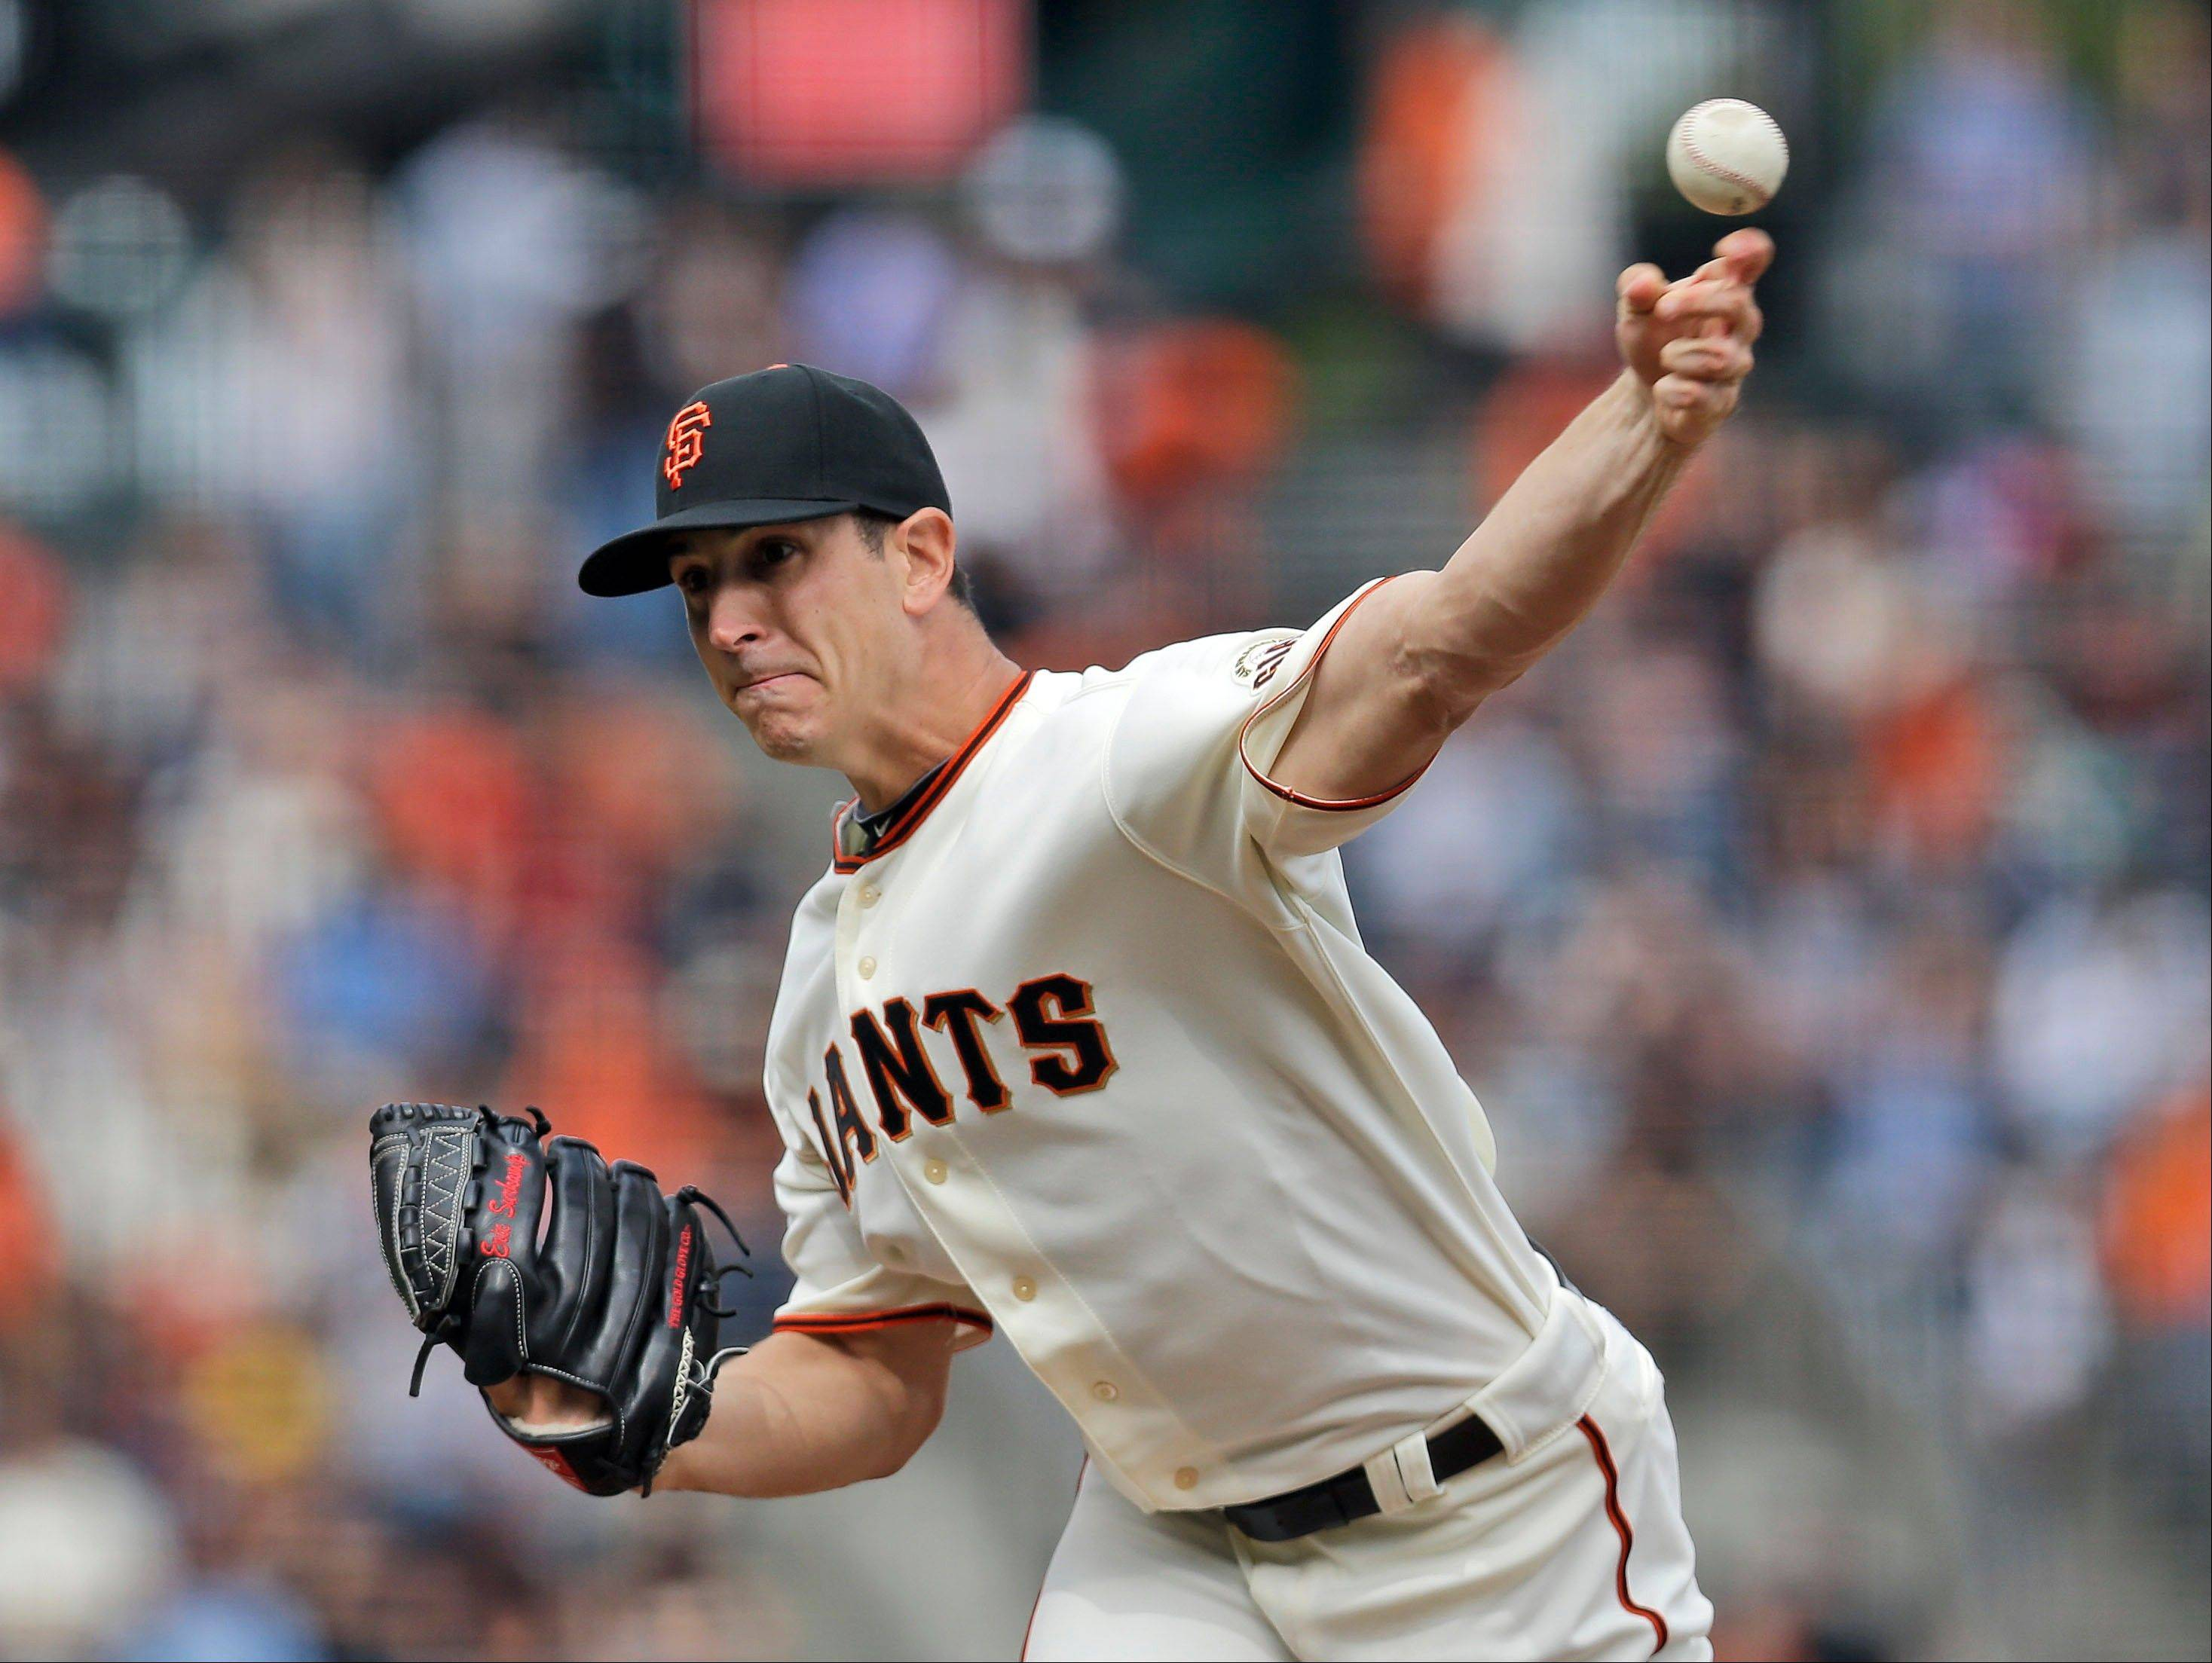 The White Sox have claimed starting pitcher Eric Surkamp off waivers from the San Francisco Giants. The Sox also lost infielder Brent Morel off waivers to Toronto.